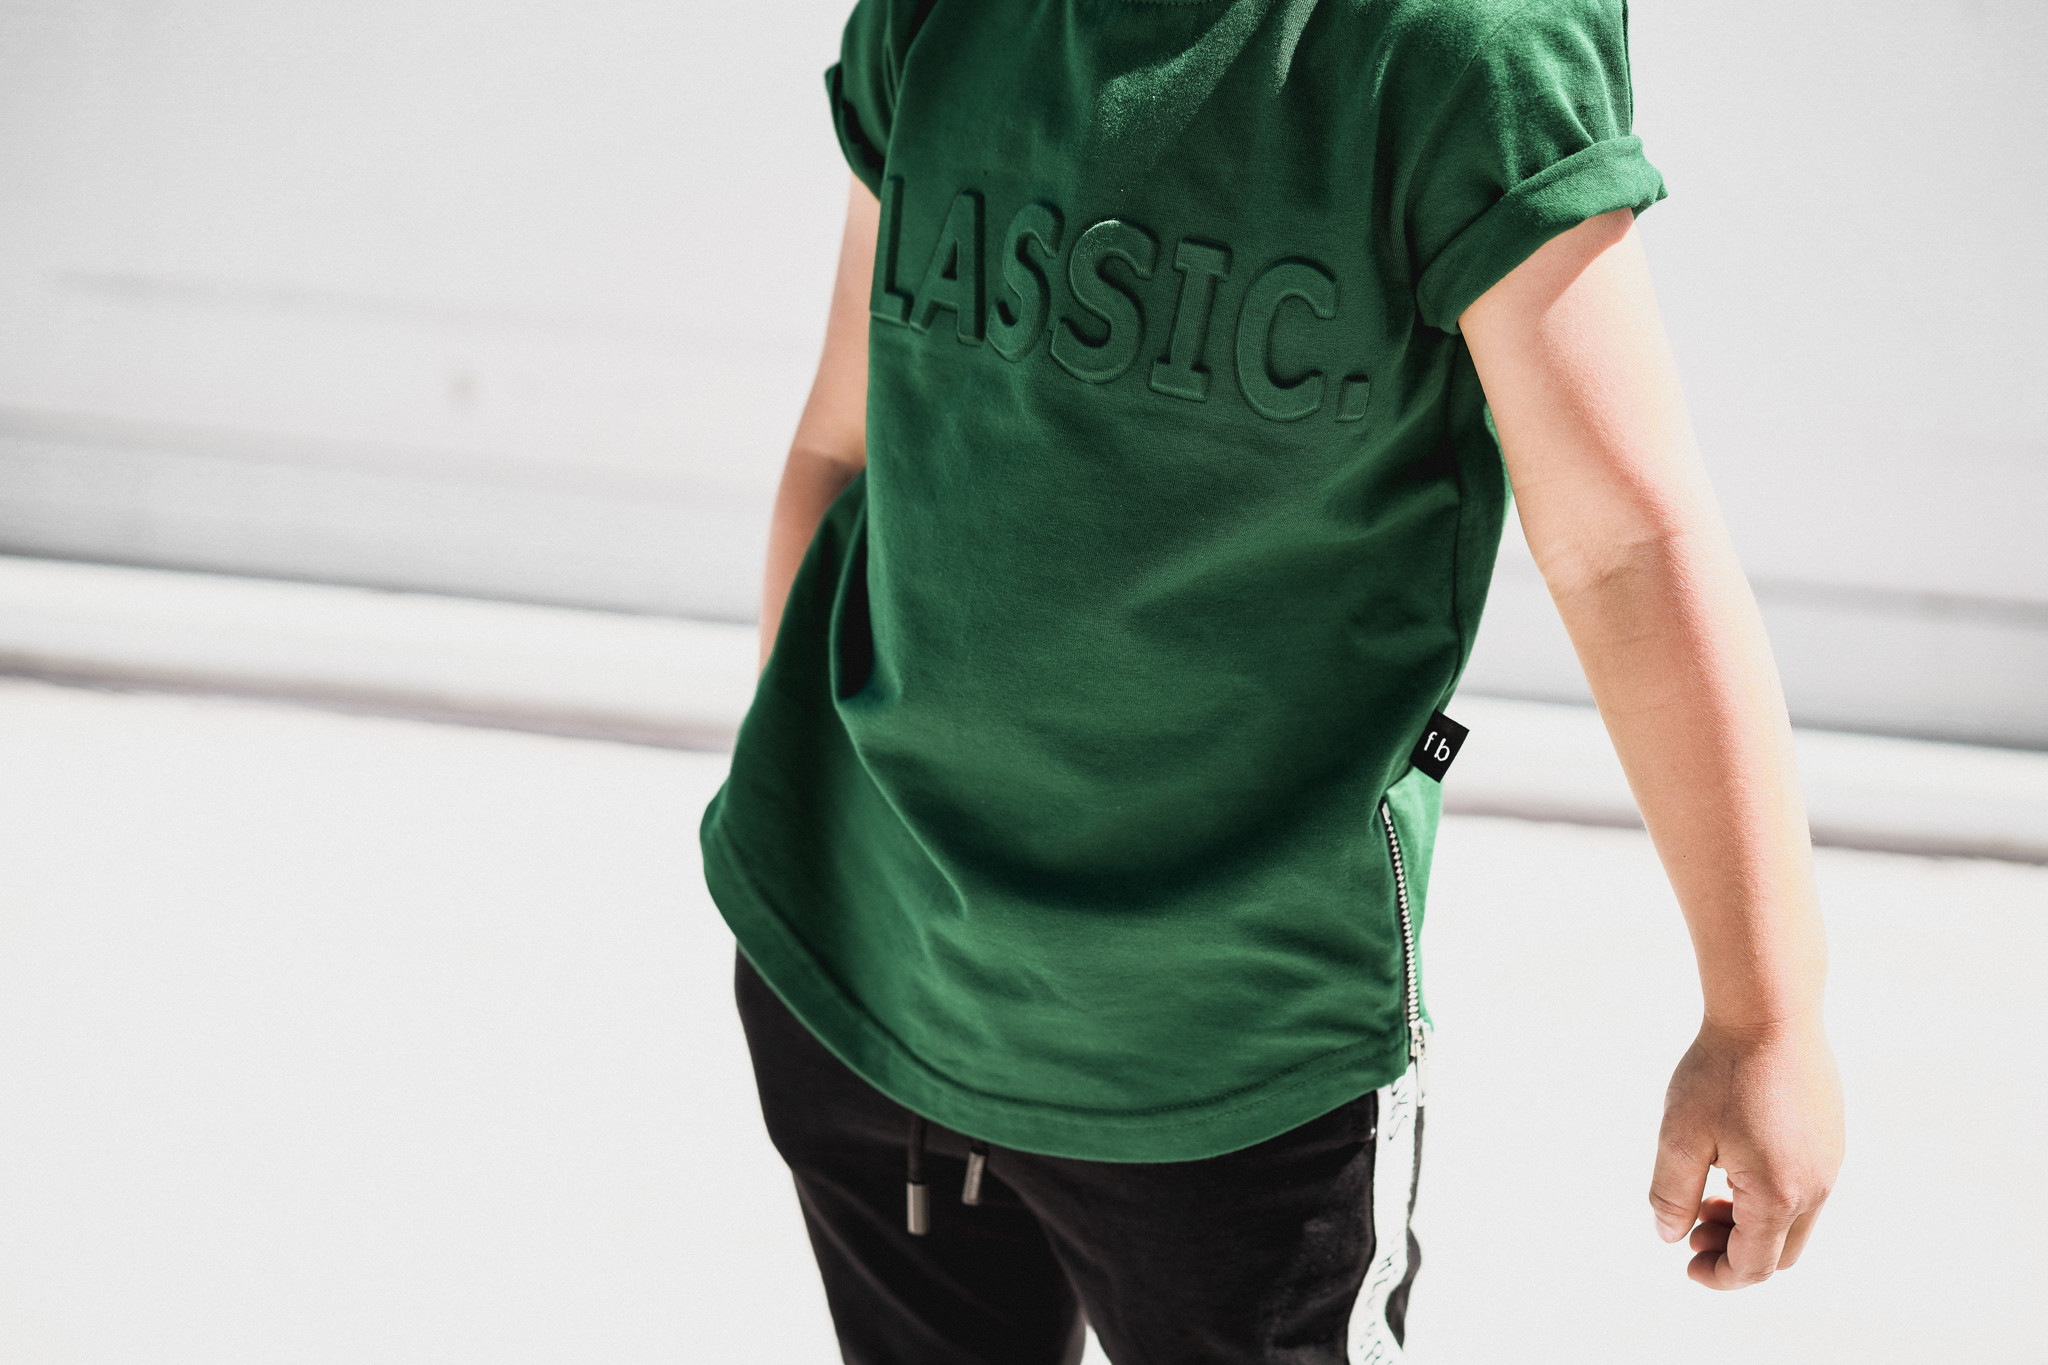 Fred and Brooks GROEN TSHIRT JONGEN | BASIC GROEN SHIRT | FRED AND BROOKS